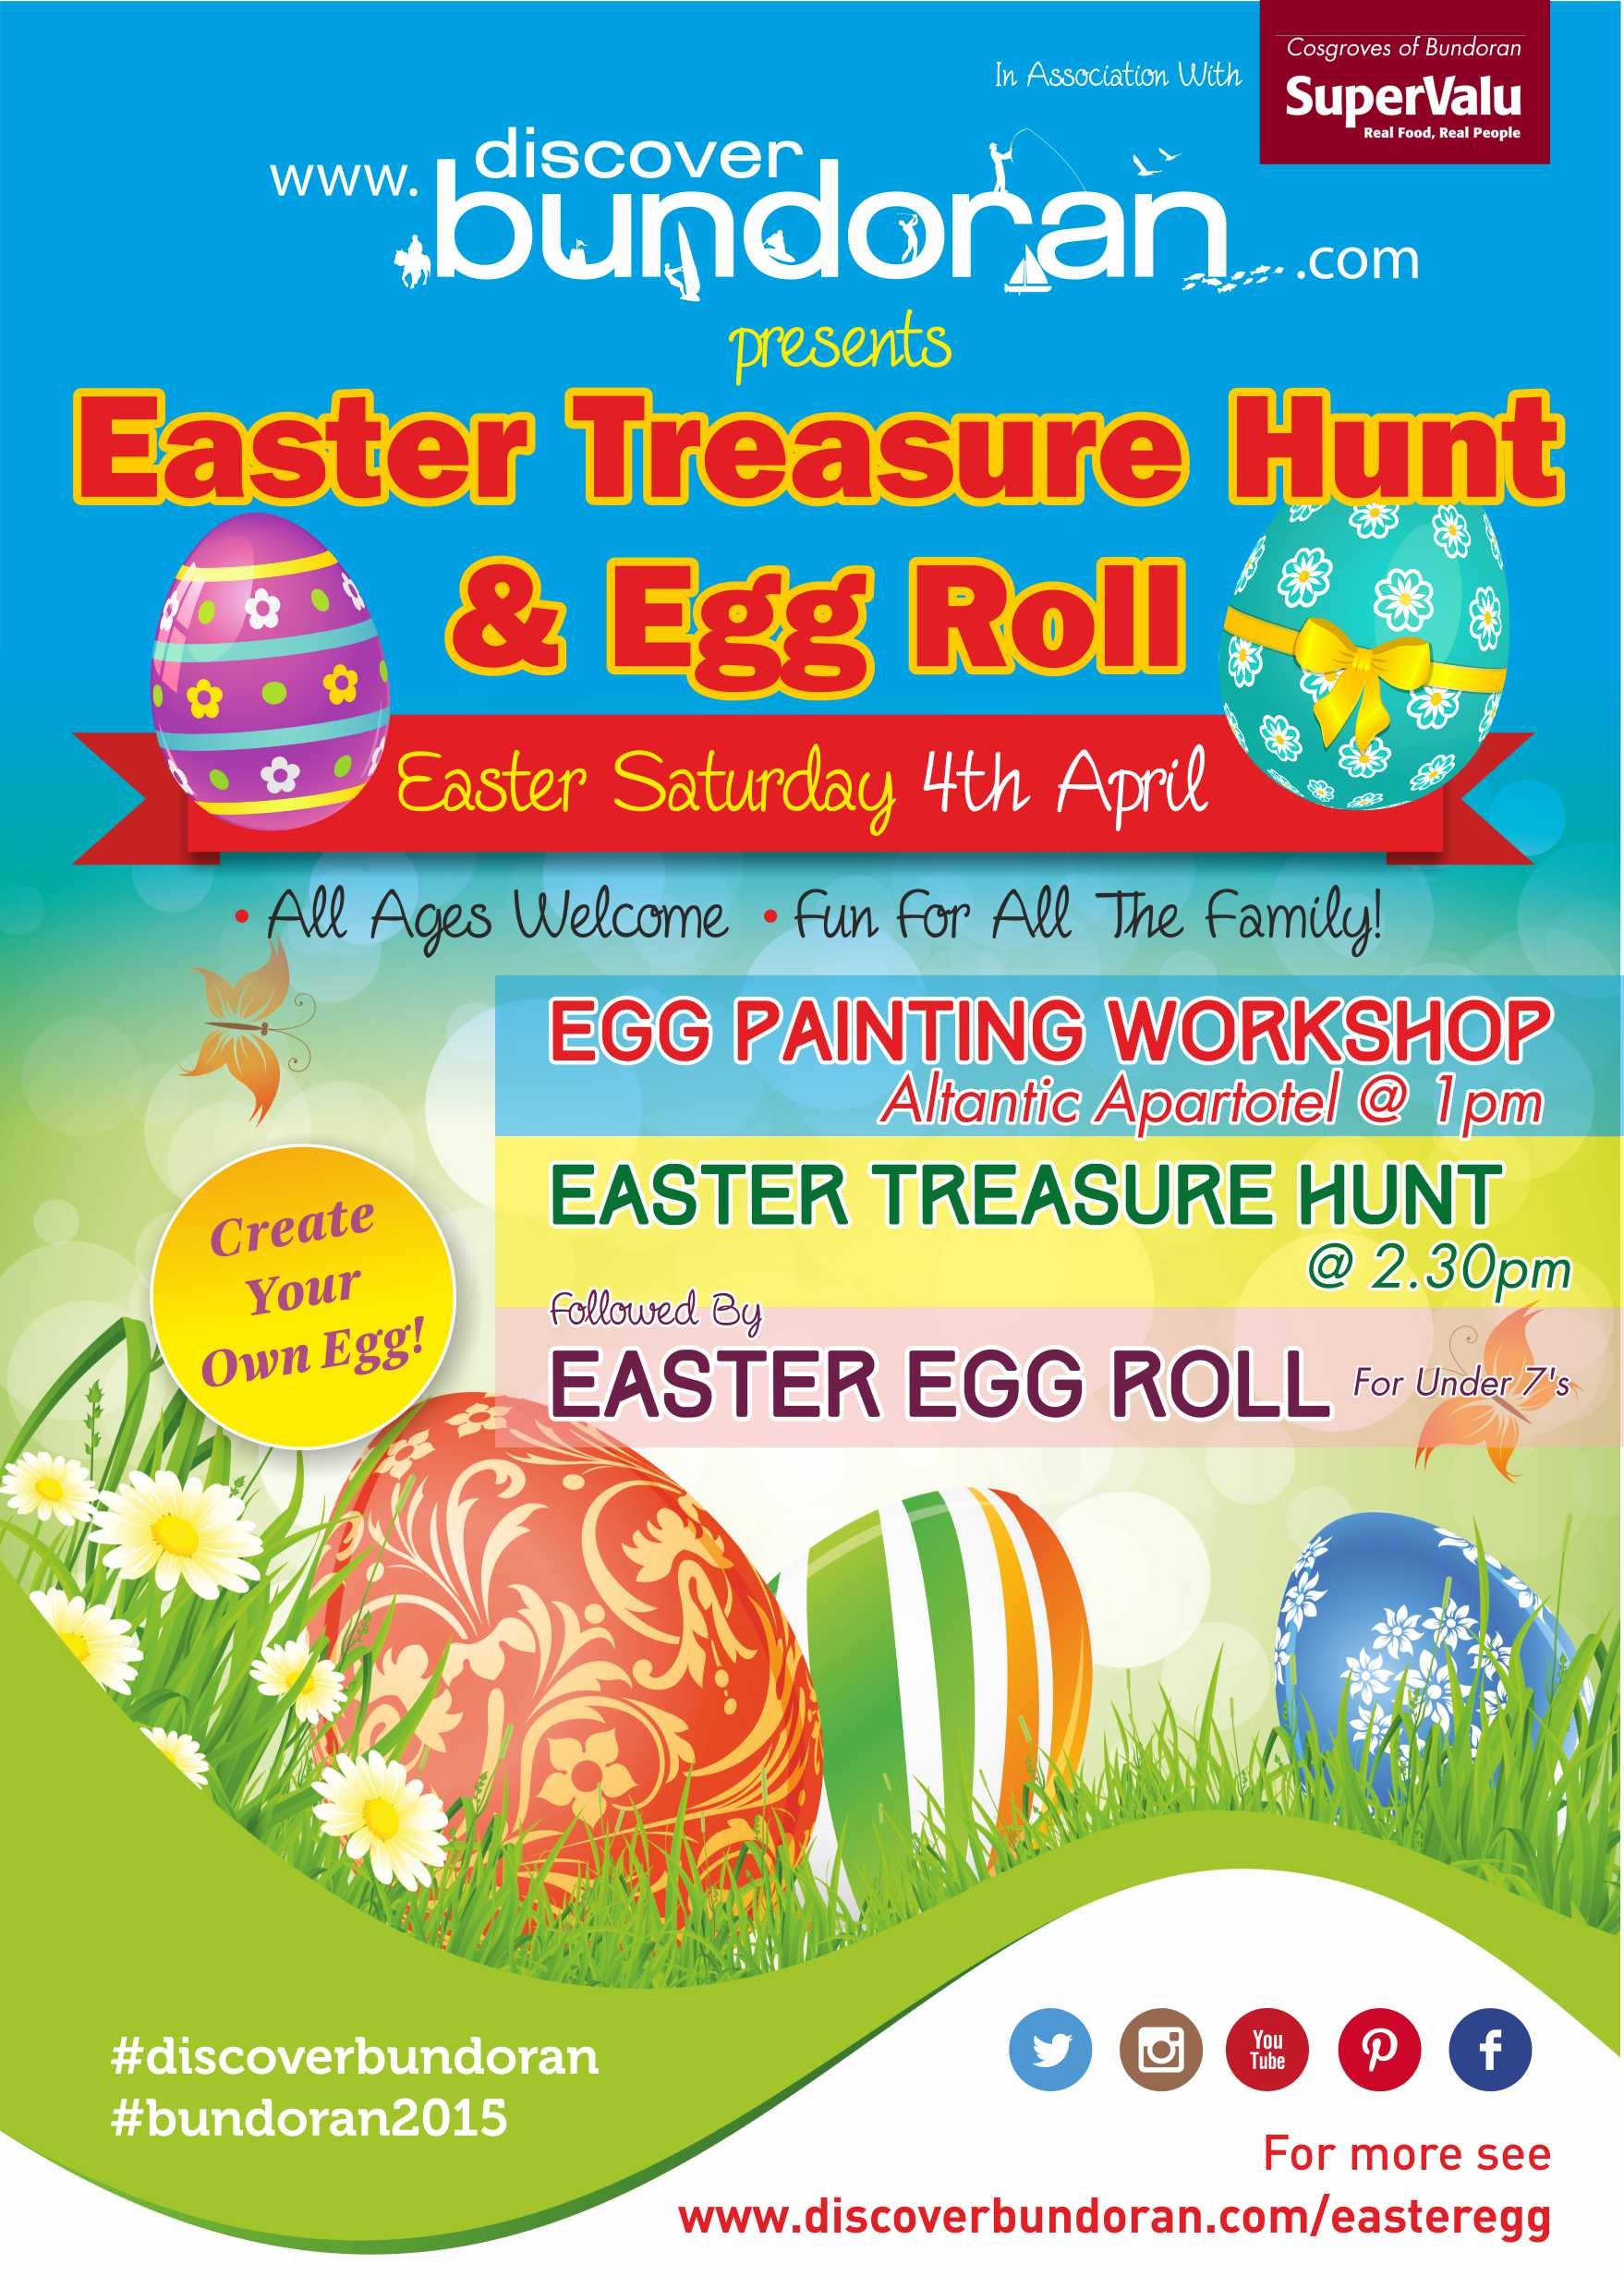 Easter egg painting and treasure hunt discover bundoran for Easter egg fun facts